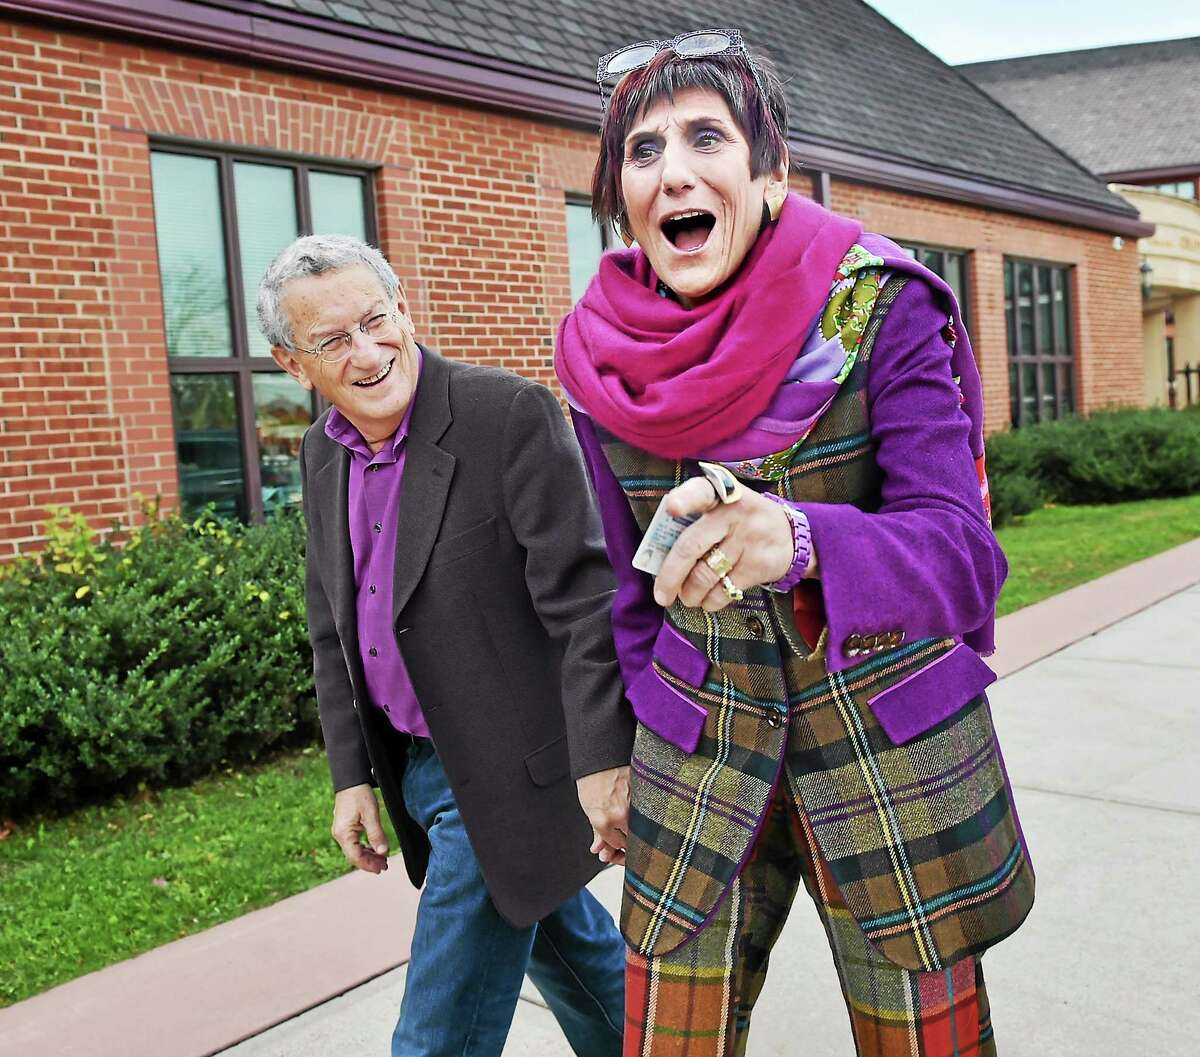 (Catherine Avalone - New Haven Register) U.S. Congresswoman, Rosa DeLauro and her husband, political strategist Stan Greenberg arrive at Celentano Biotech, Health and Medical Magnet School on Canner Street in New Haven to vote on Election Day, Tuesday, November 4, 2014.